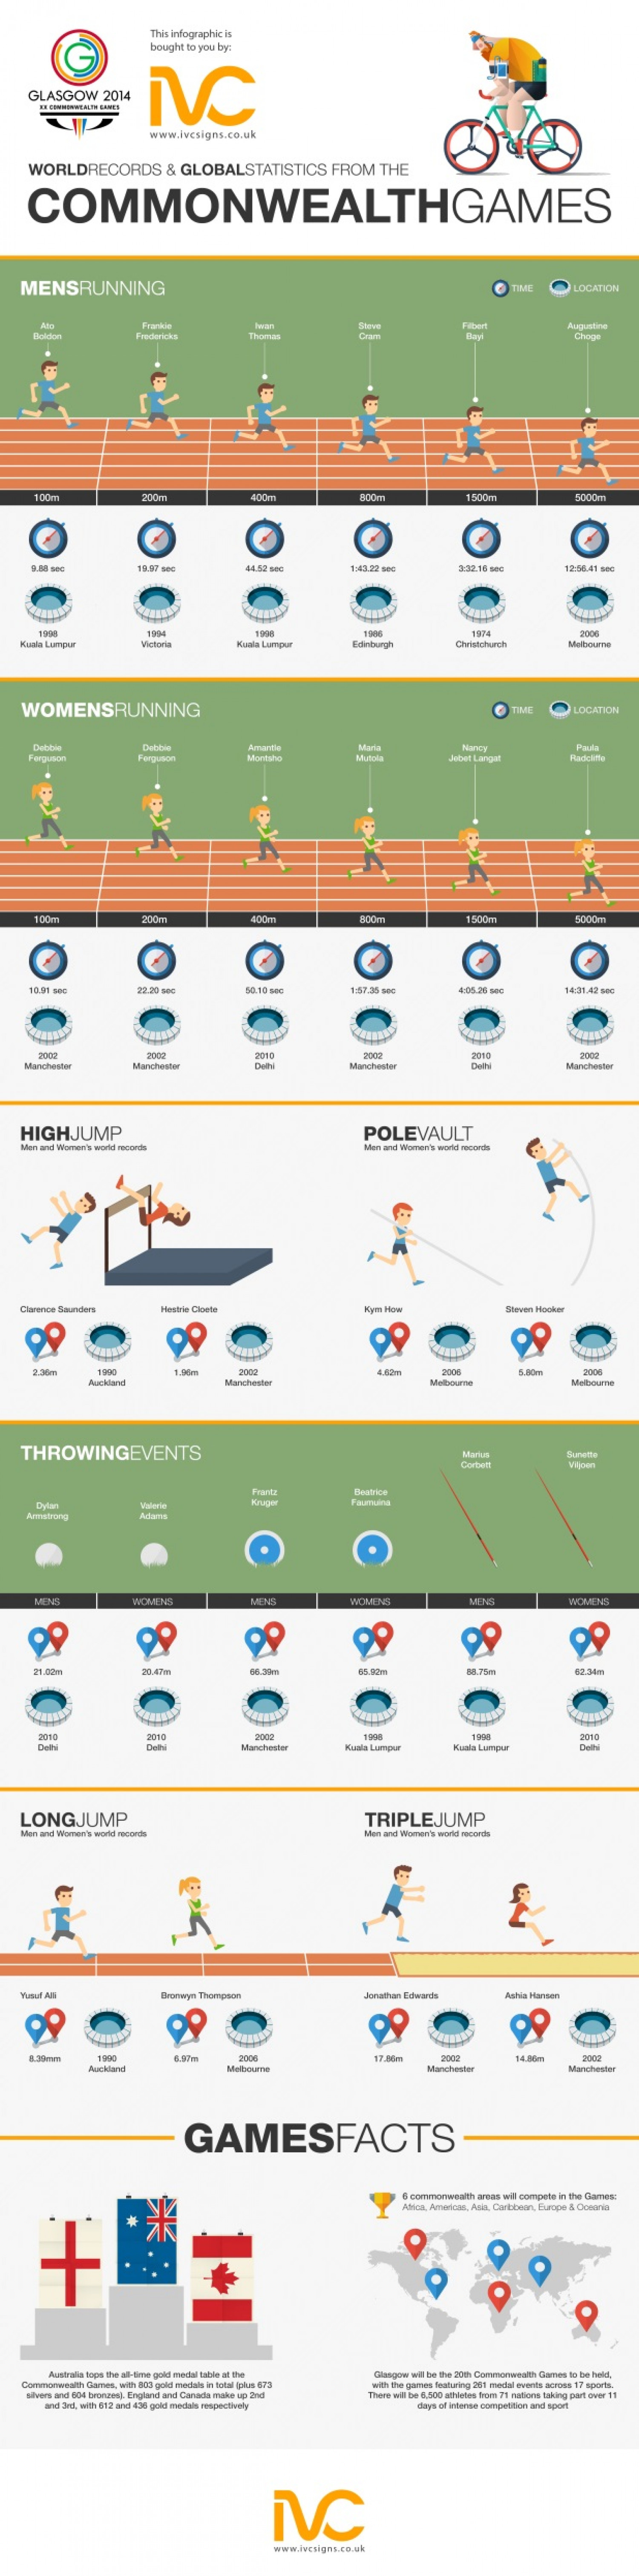 World Records from the Commonwealth Games Infographic